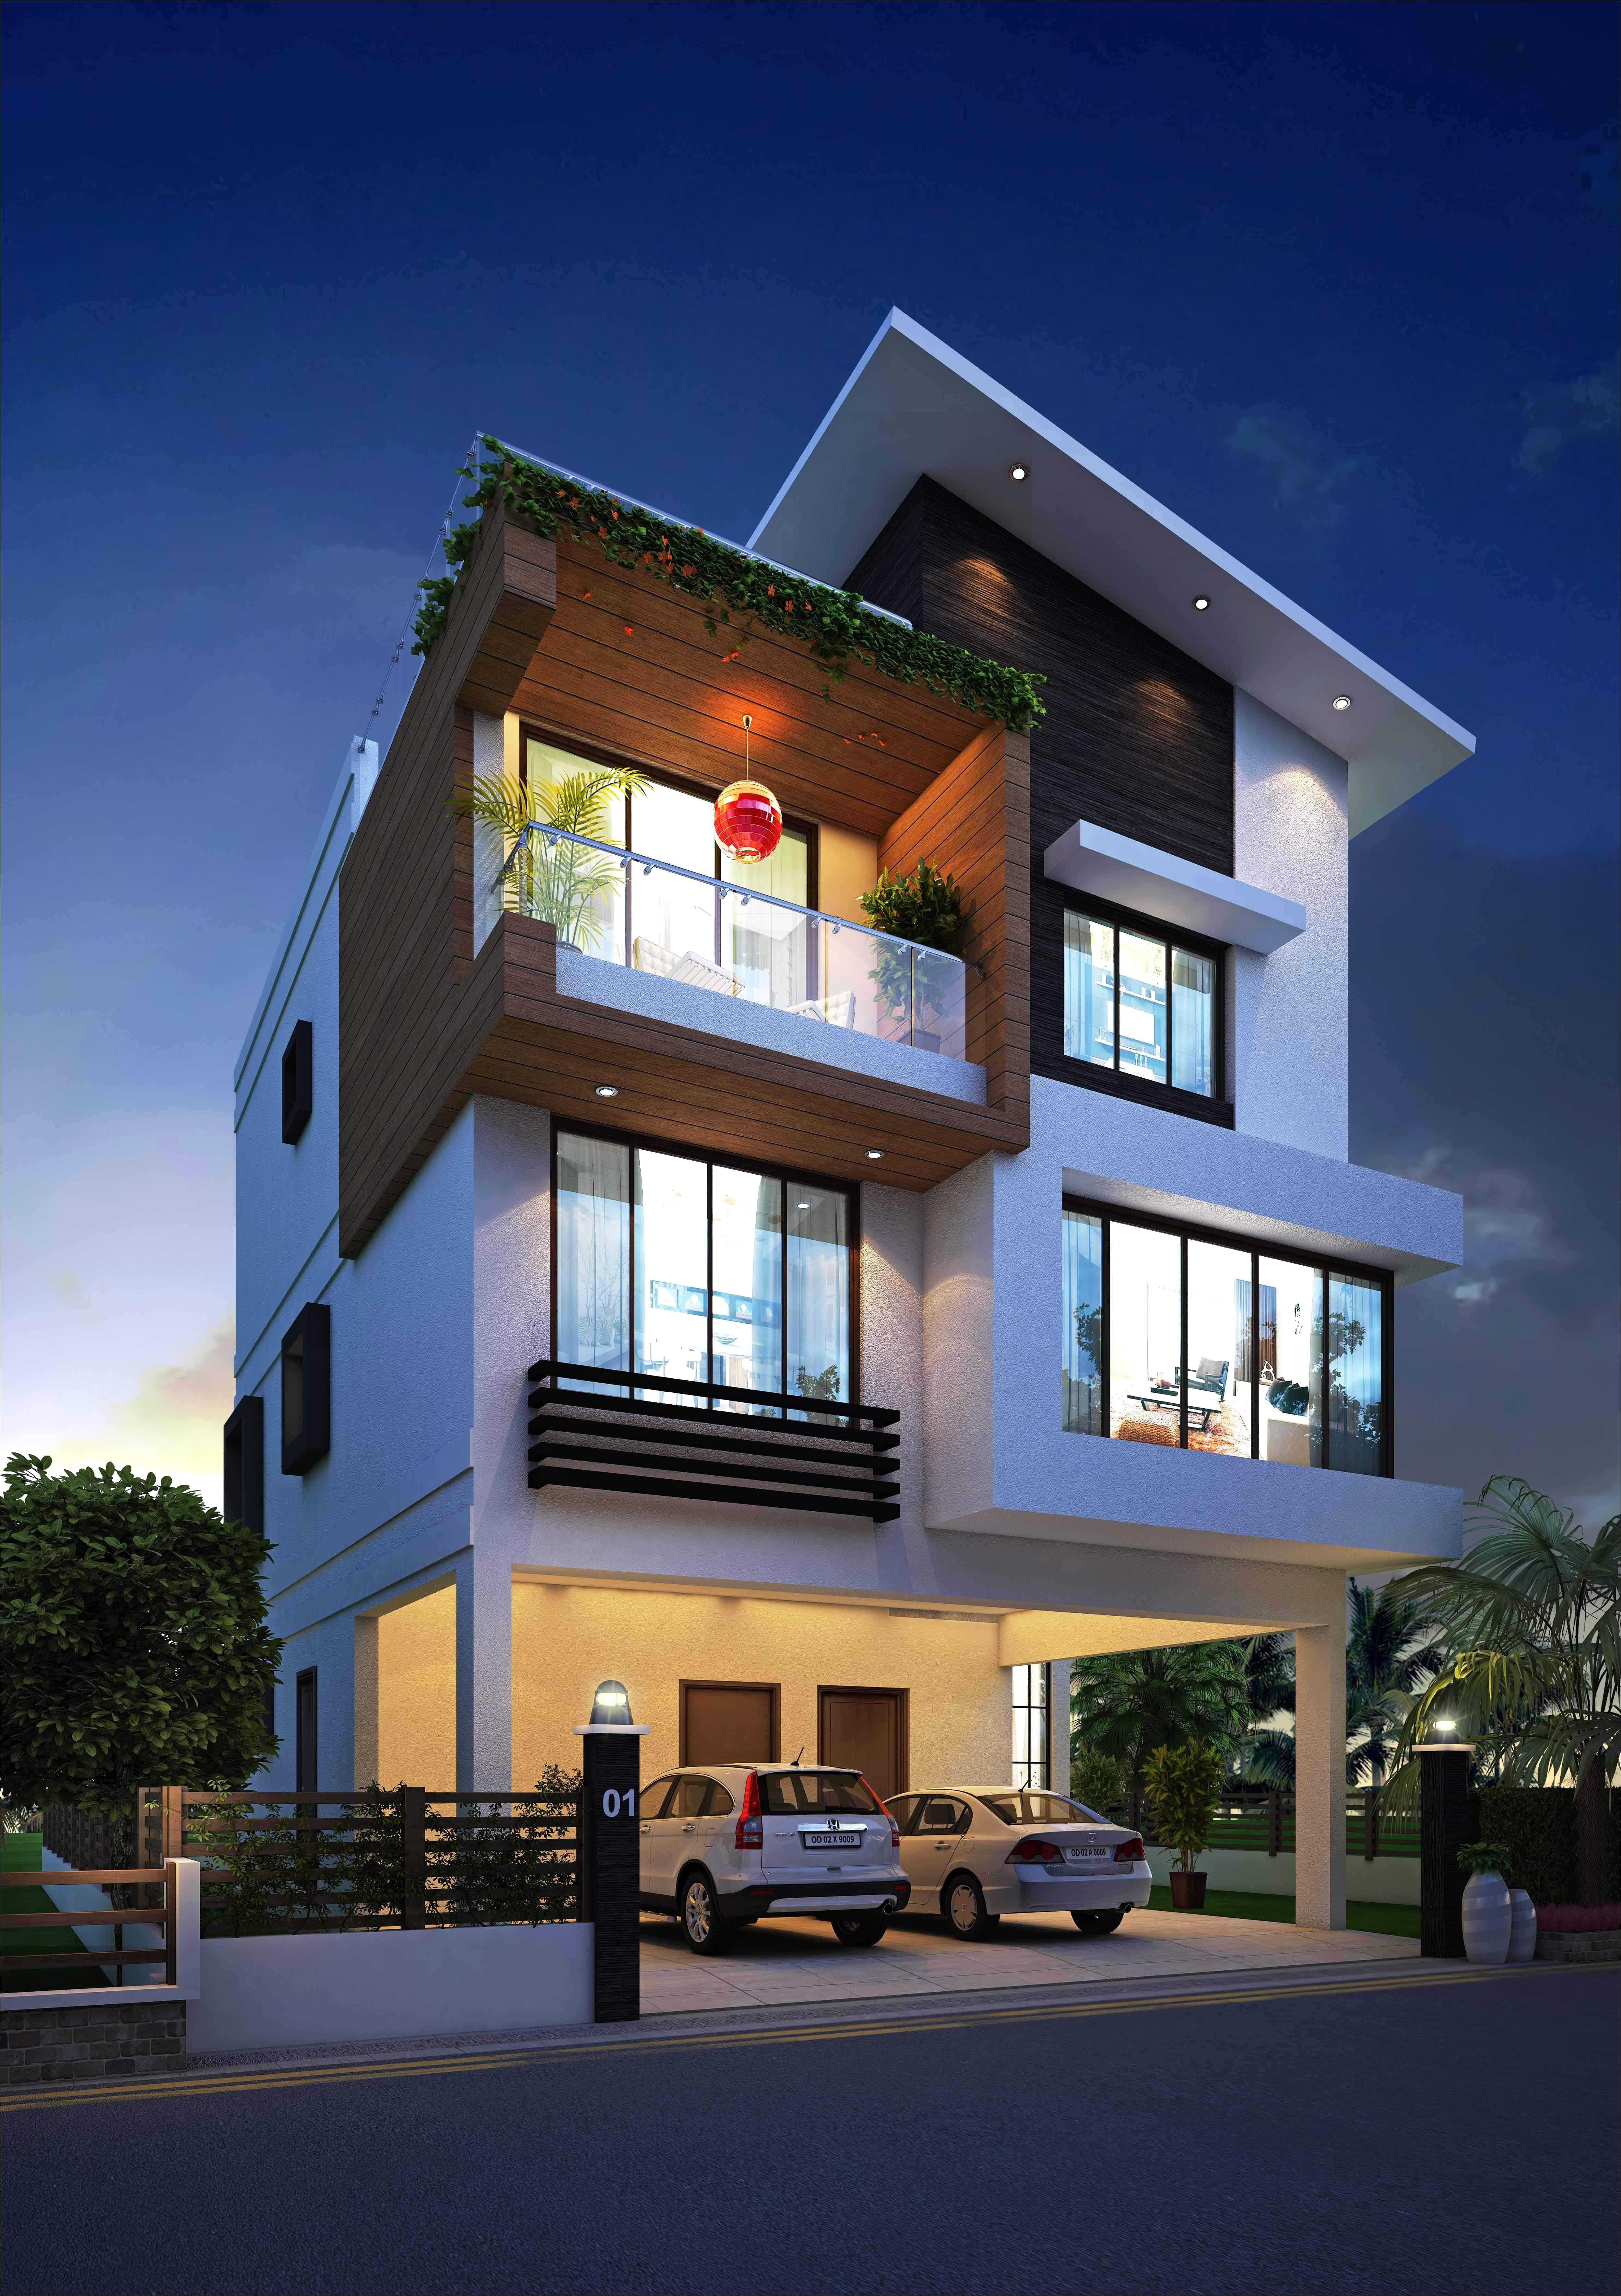 House Plans Under 100k to Build Beautiful House Plans Under 100k to Build Check More at S